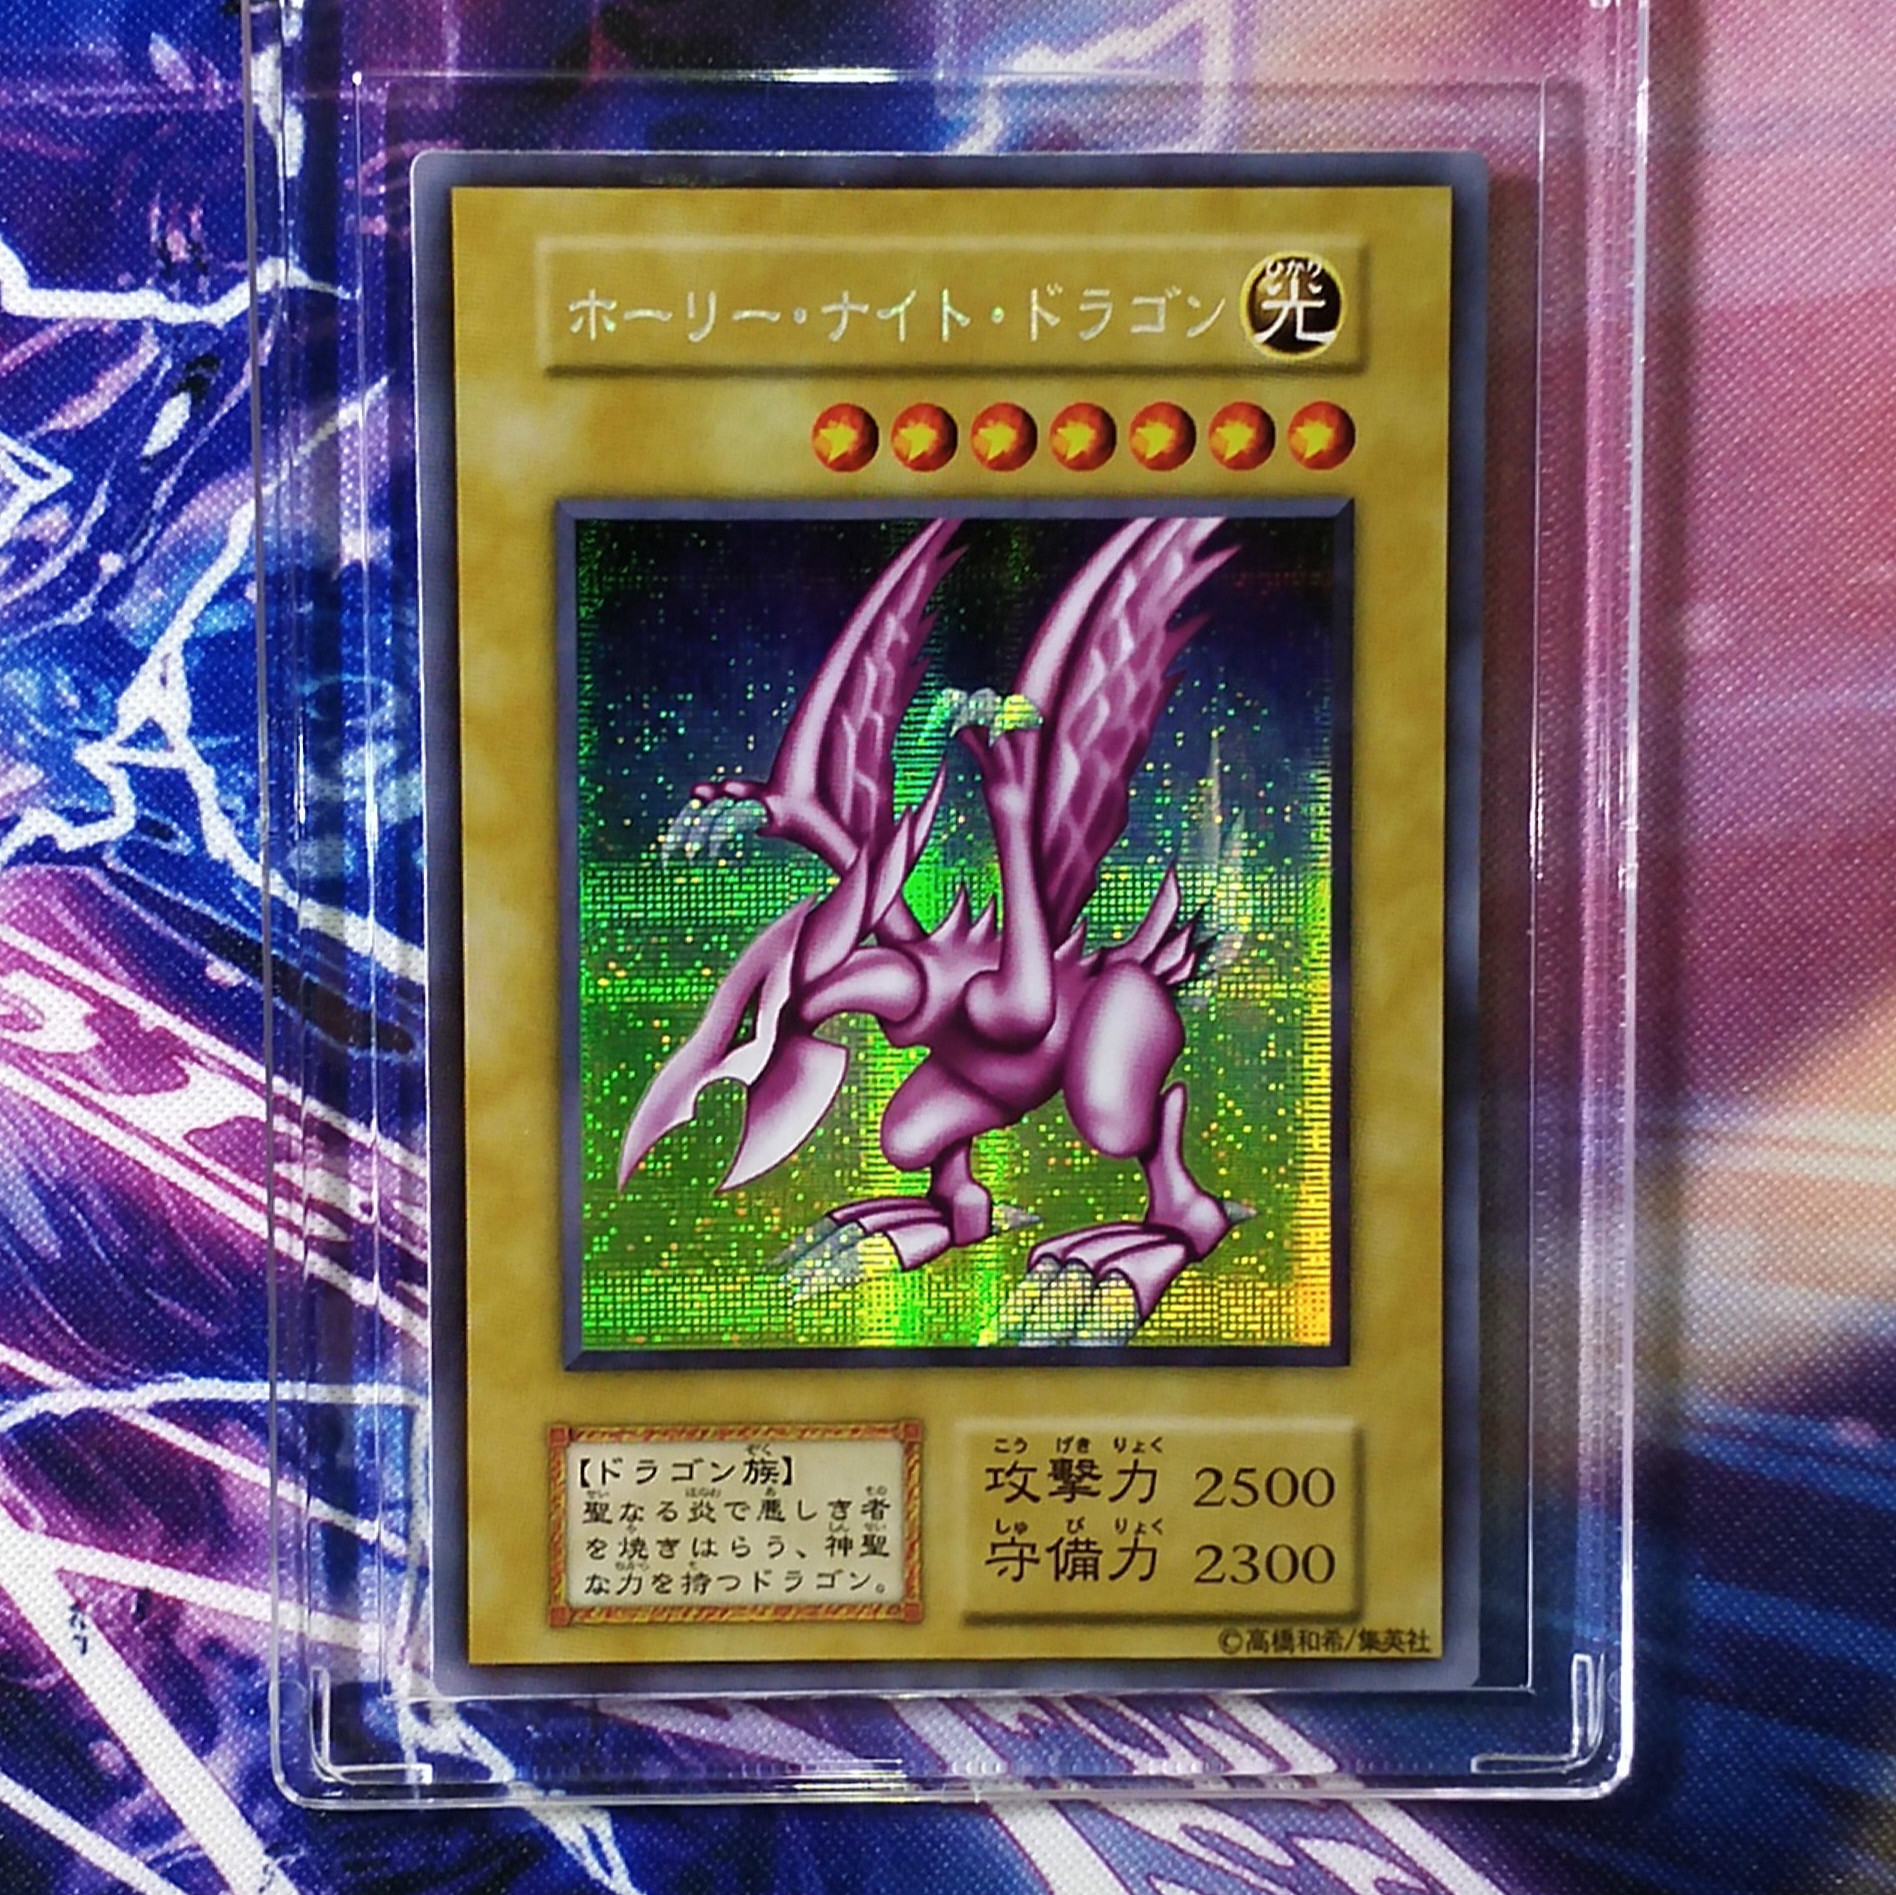 Yu Gi Oh Seiyaryu Early Love Edition DIY Colorful Toys Hobbies Hobby Collectibles Game Collection Anime Cards